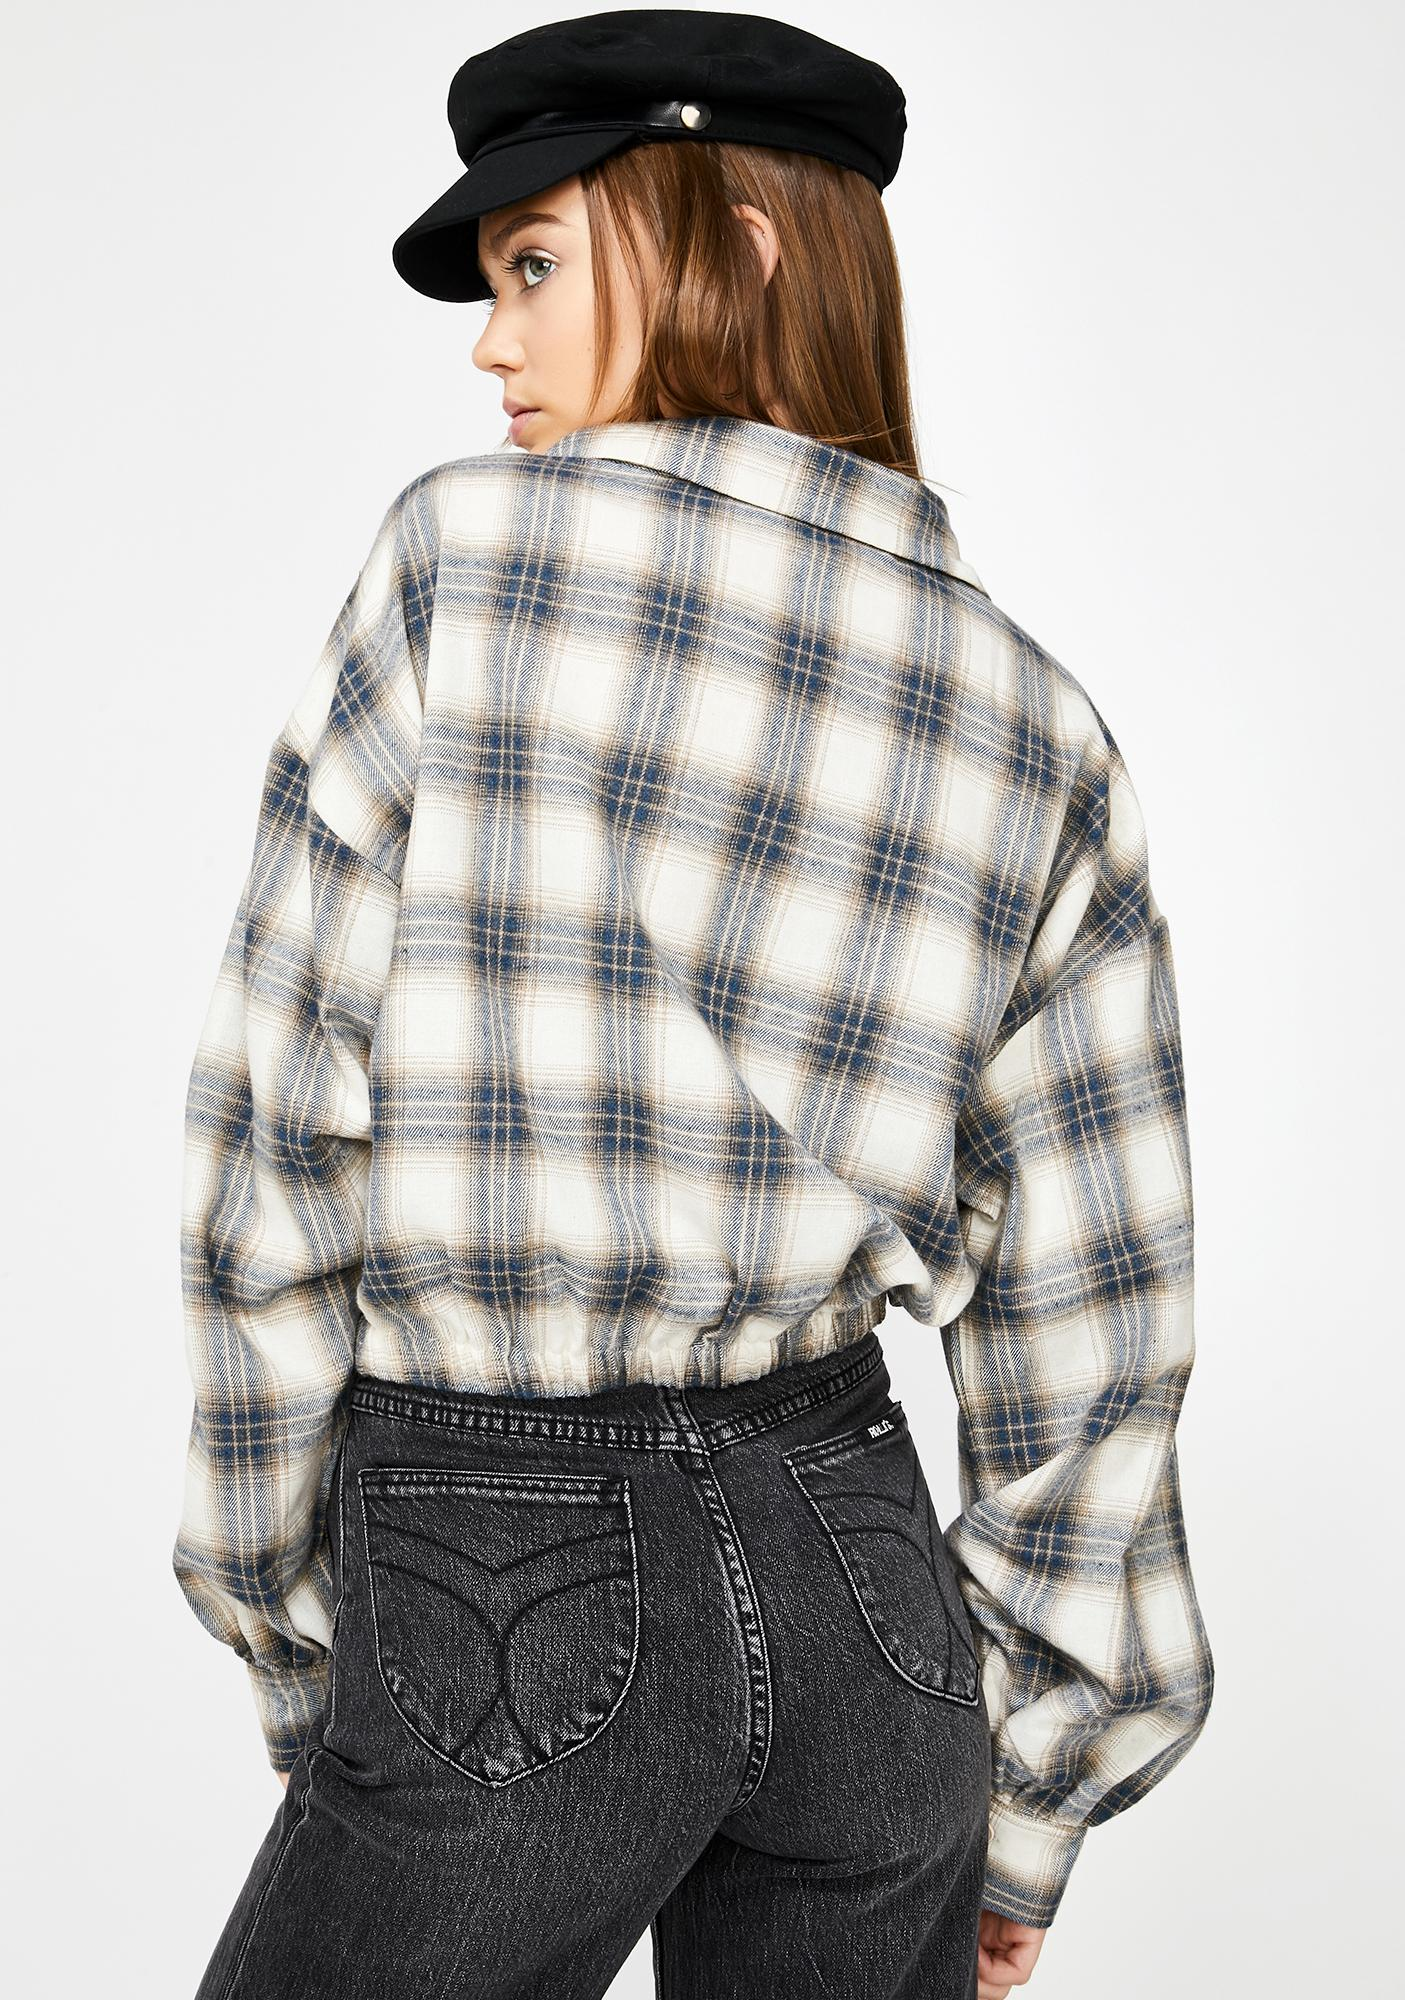 Lay Low Cropped Flannel